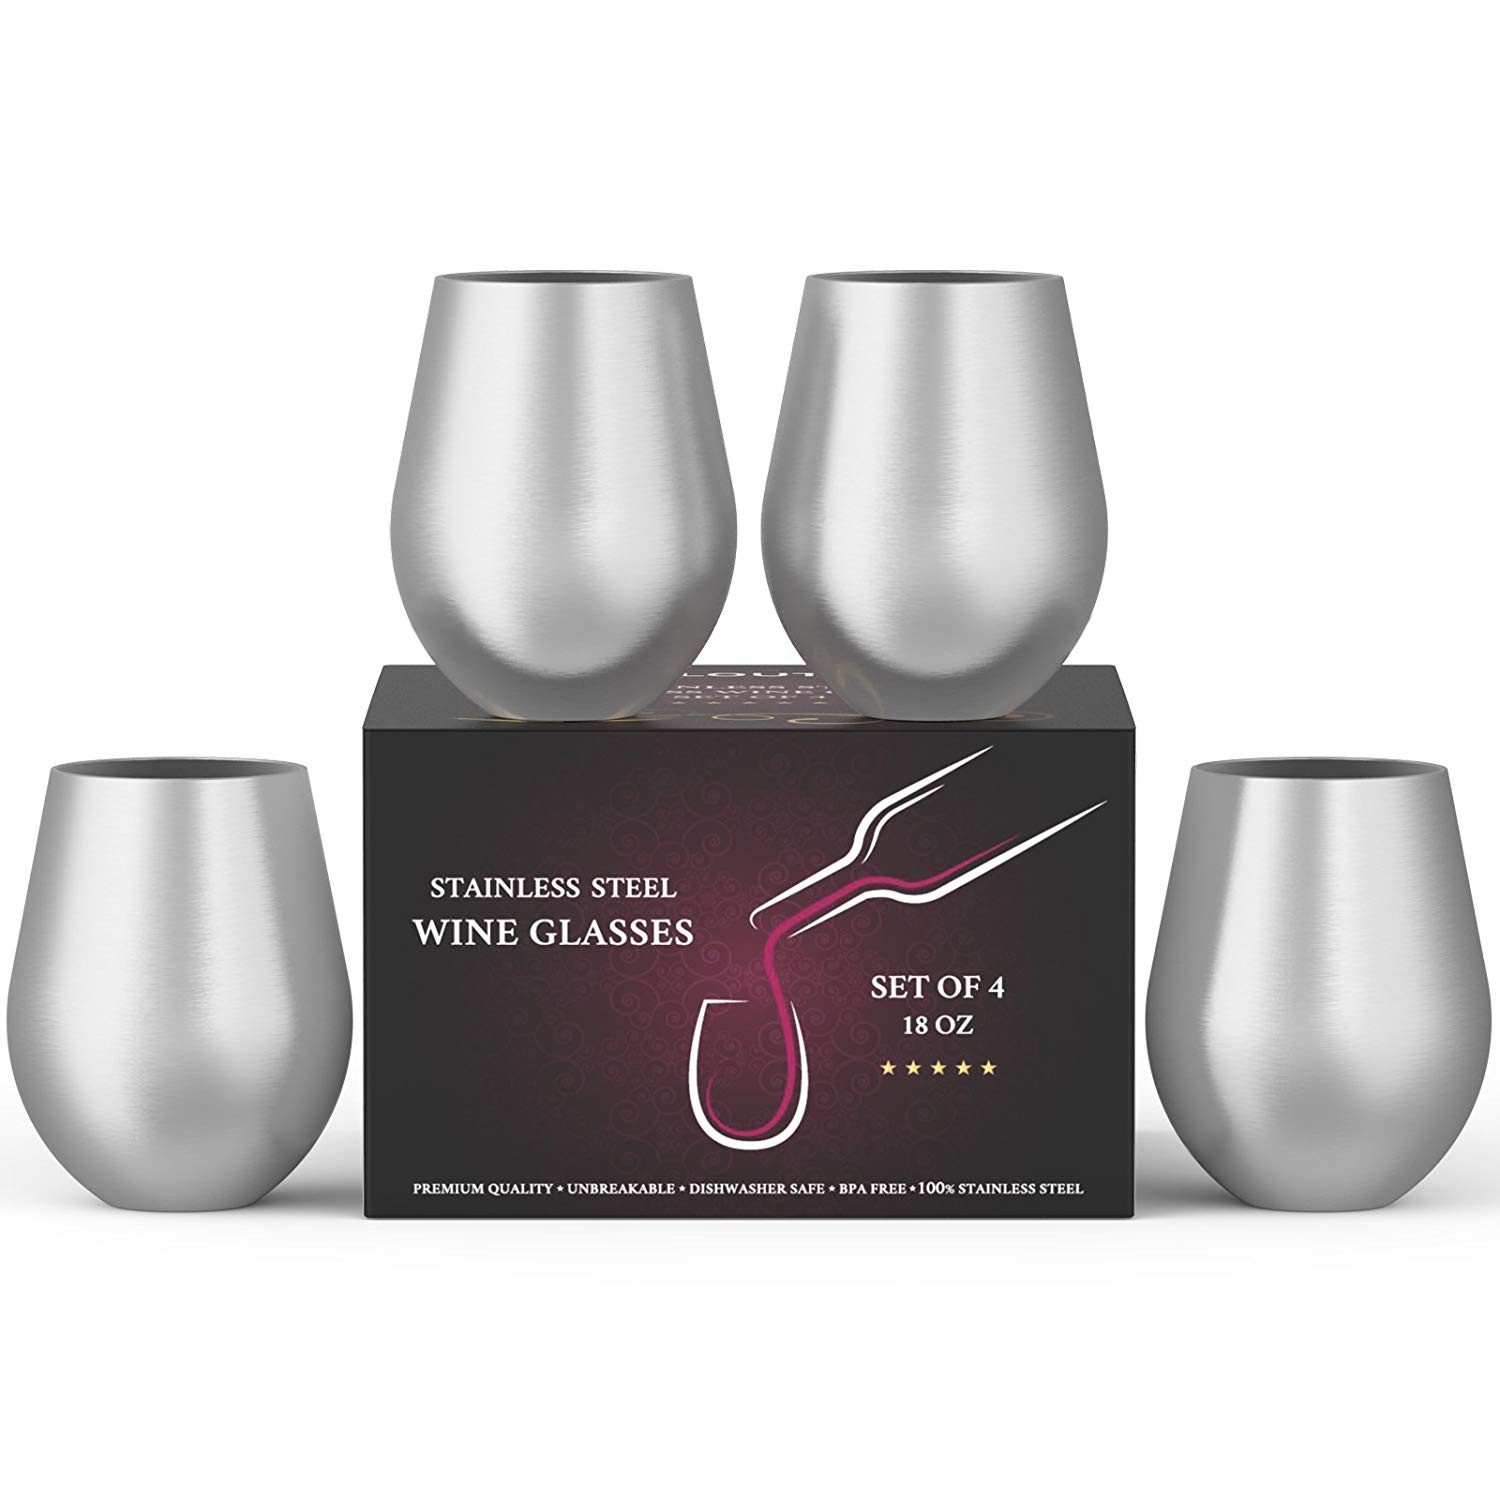 Brushed Nickel Flower Vases Of Amazon Com Stainless Steel Wine Stemless Glasses Set Of 4 18 Oz Intended for Amazon Com Stainless Steel Wine Stemless Glasses Set Of 4 18 Oz Metal Wine Glasses 4 Pack Unbreakable Dishwasher Safe Bpa Free Great for Indoor